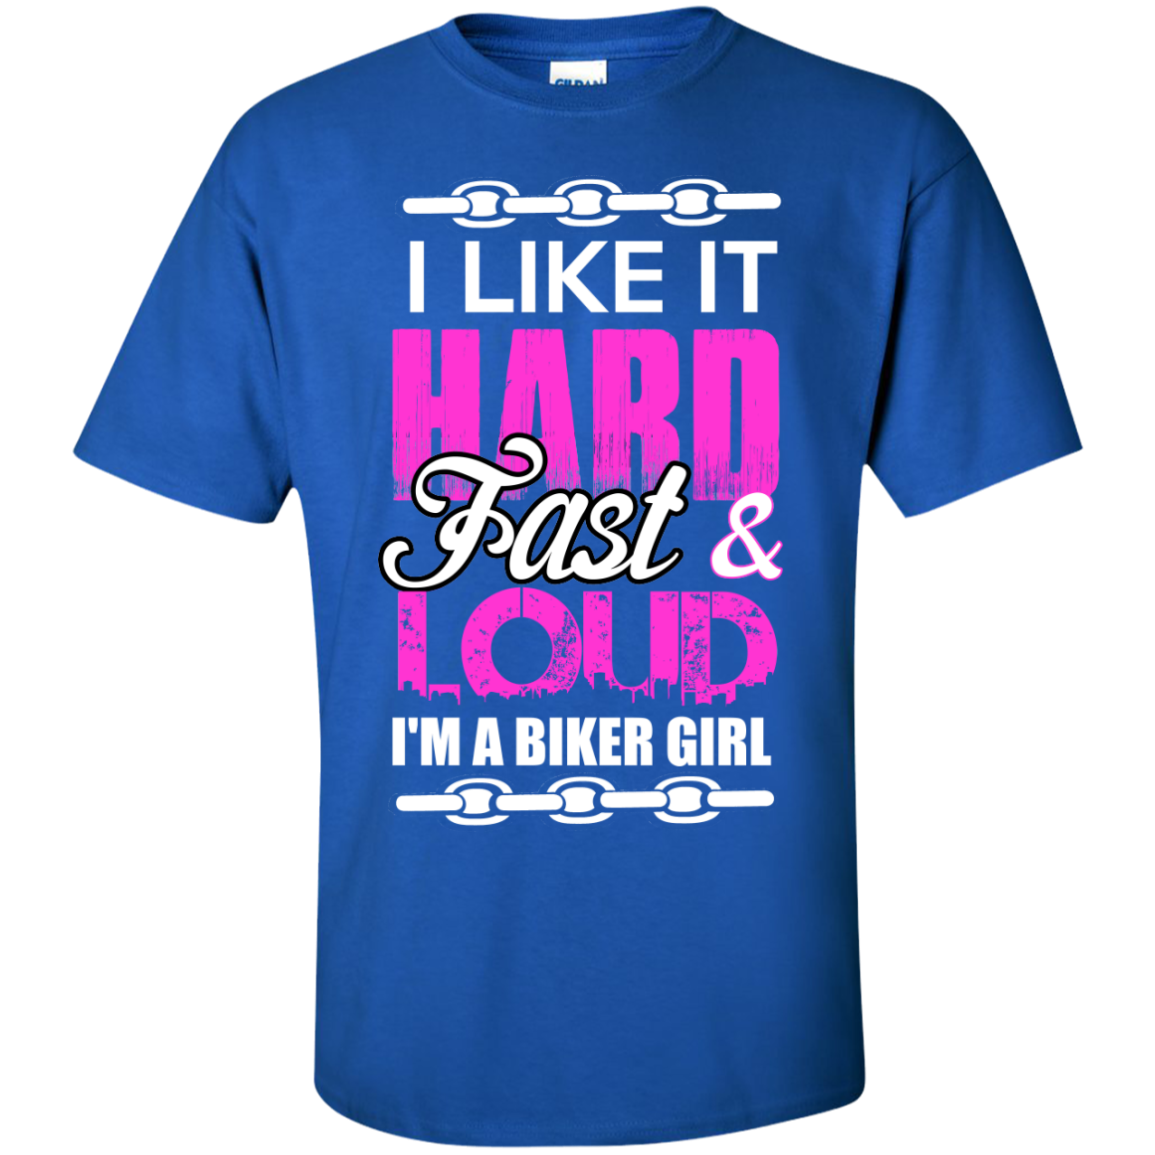 I Like It Hard Fast Loud I'm A Biker Girl T shirt - The Sun Cat